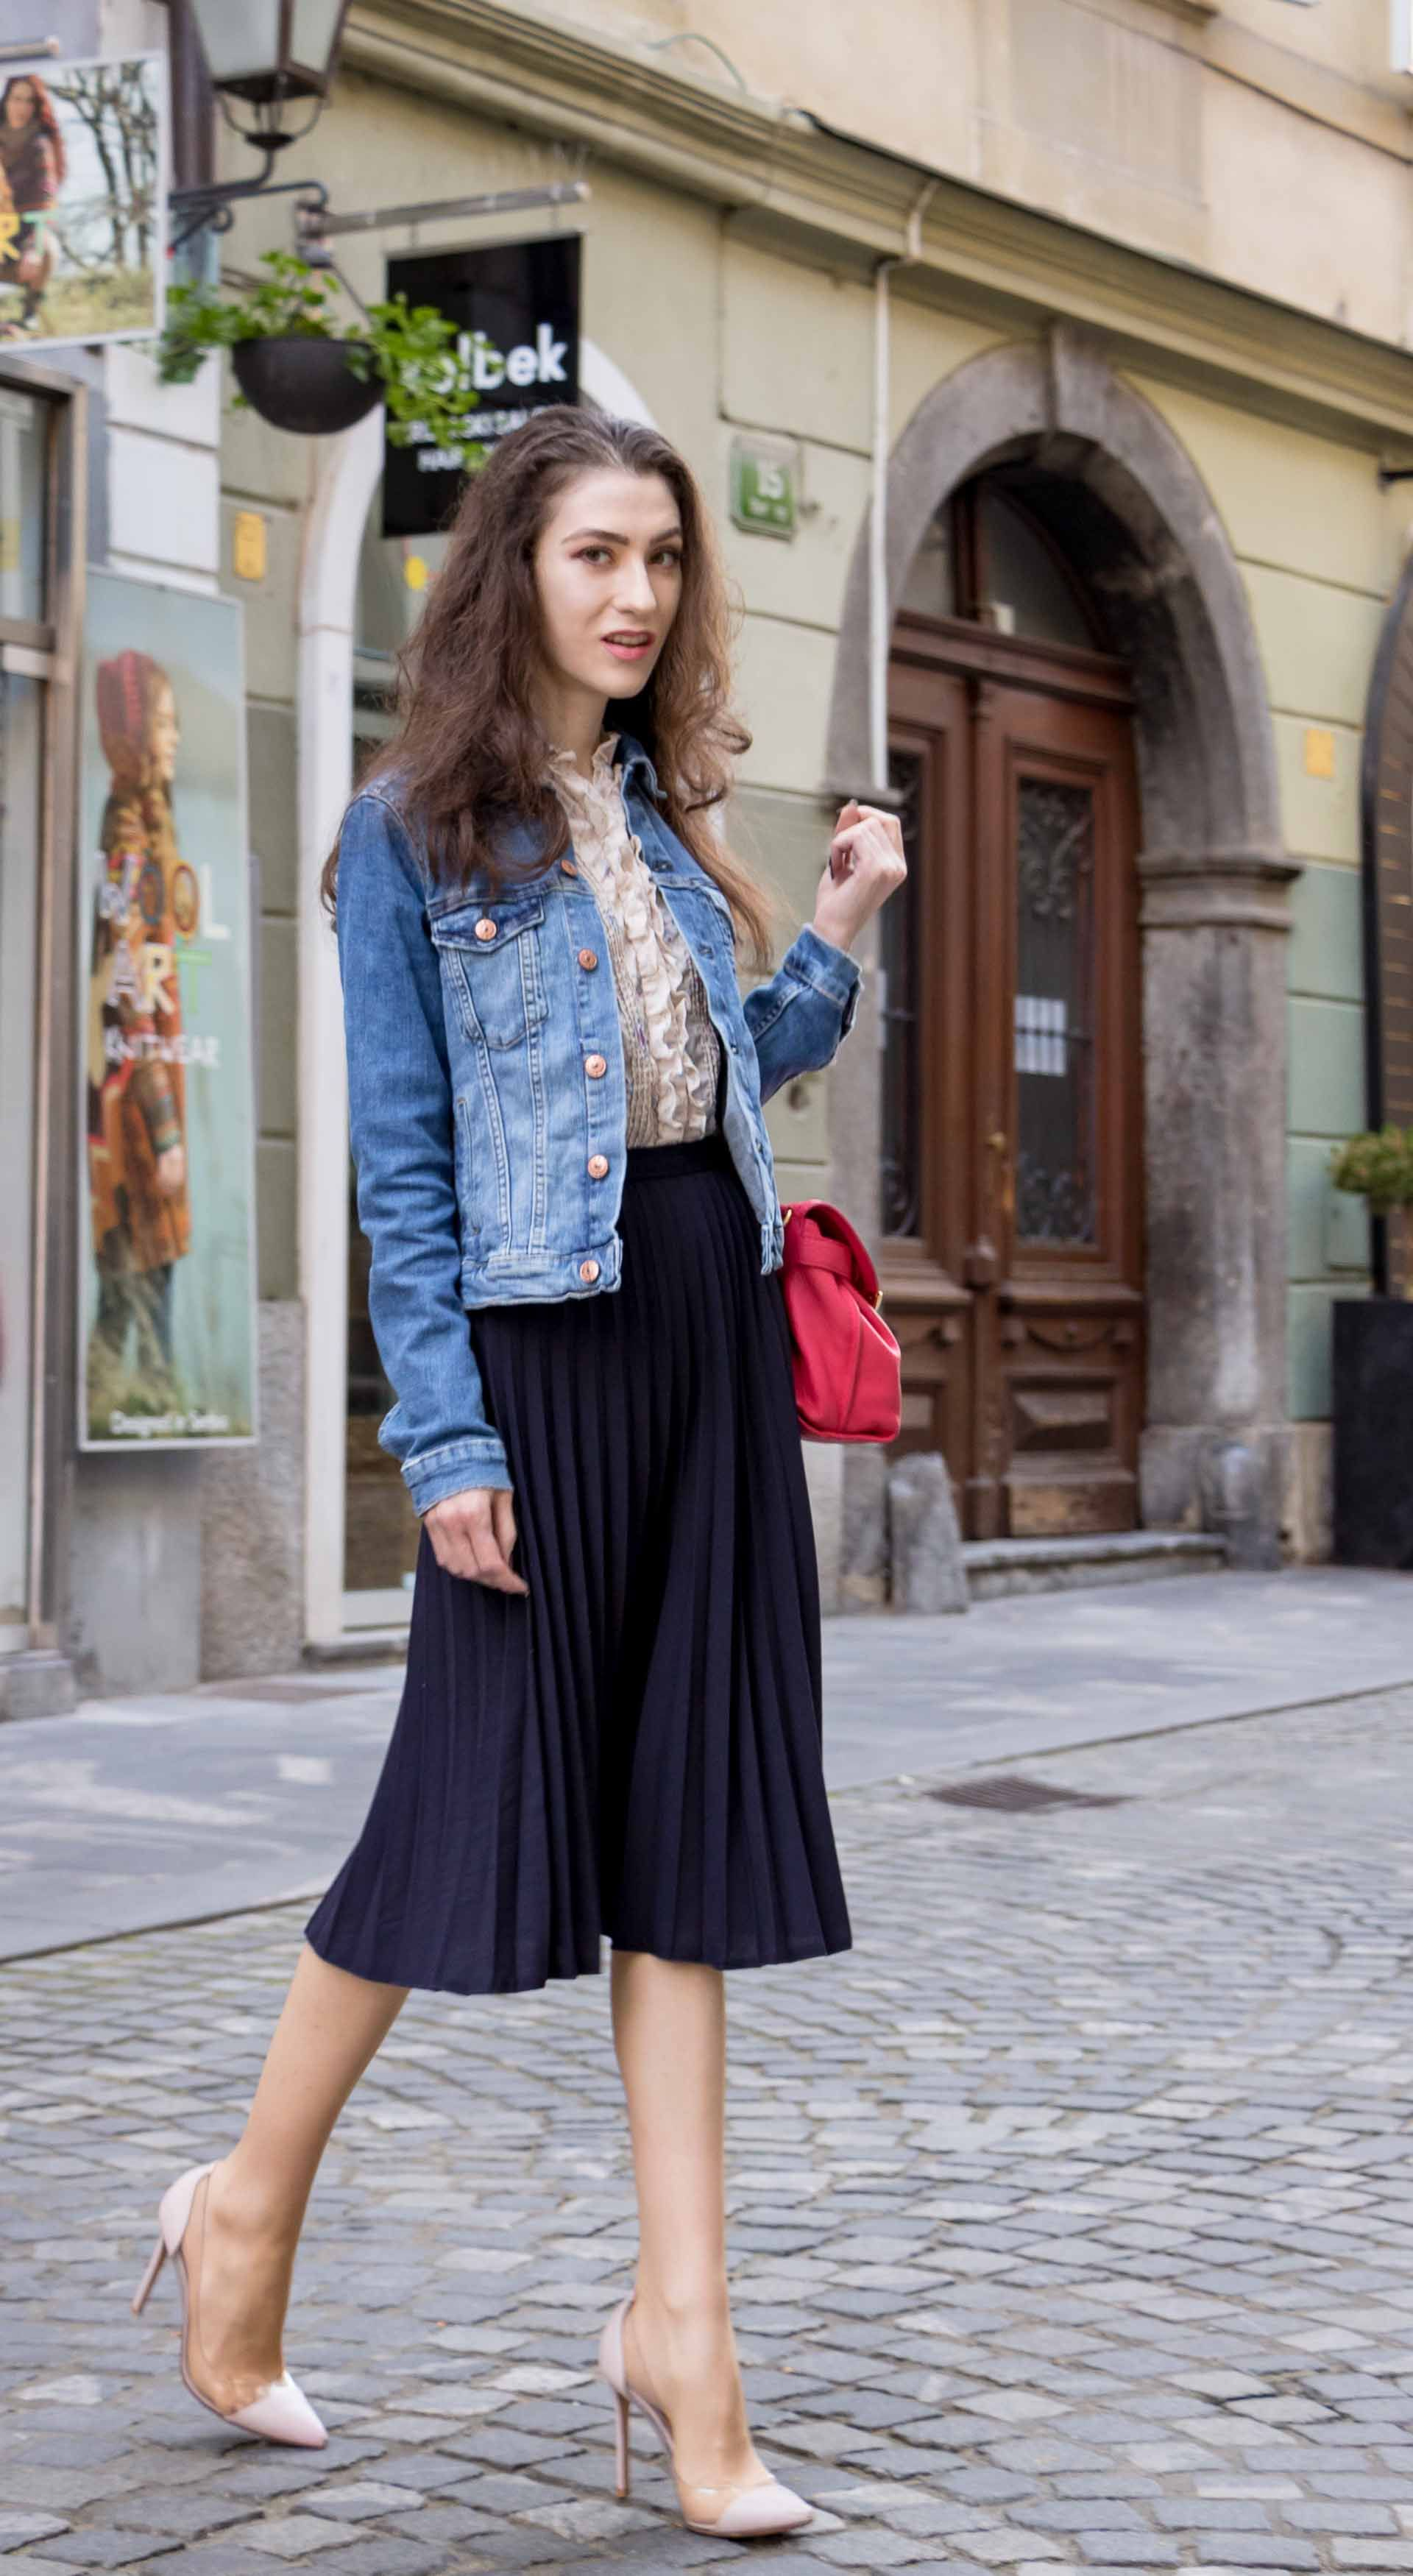 67a6930264 Fashion Blogger Veronika Lipar of Brunette from Wall Street sharing how to  look cool yet elegant for brunch #fashion #blogpost #chic #casual  #weekendoutfit ...